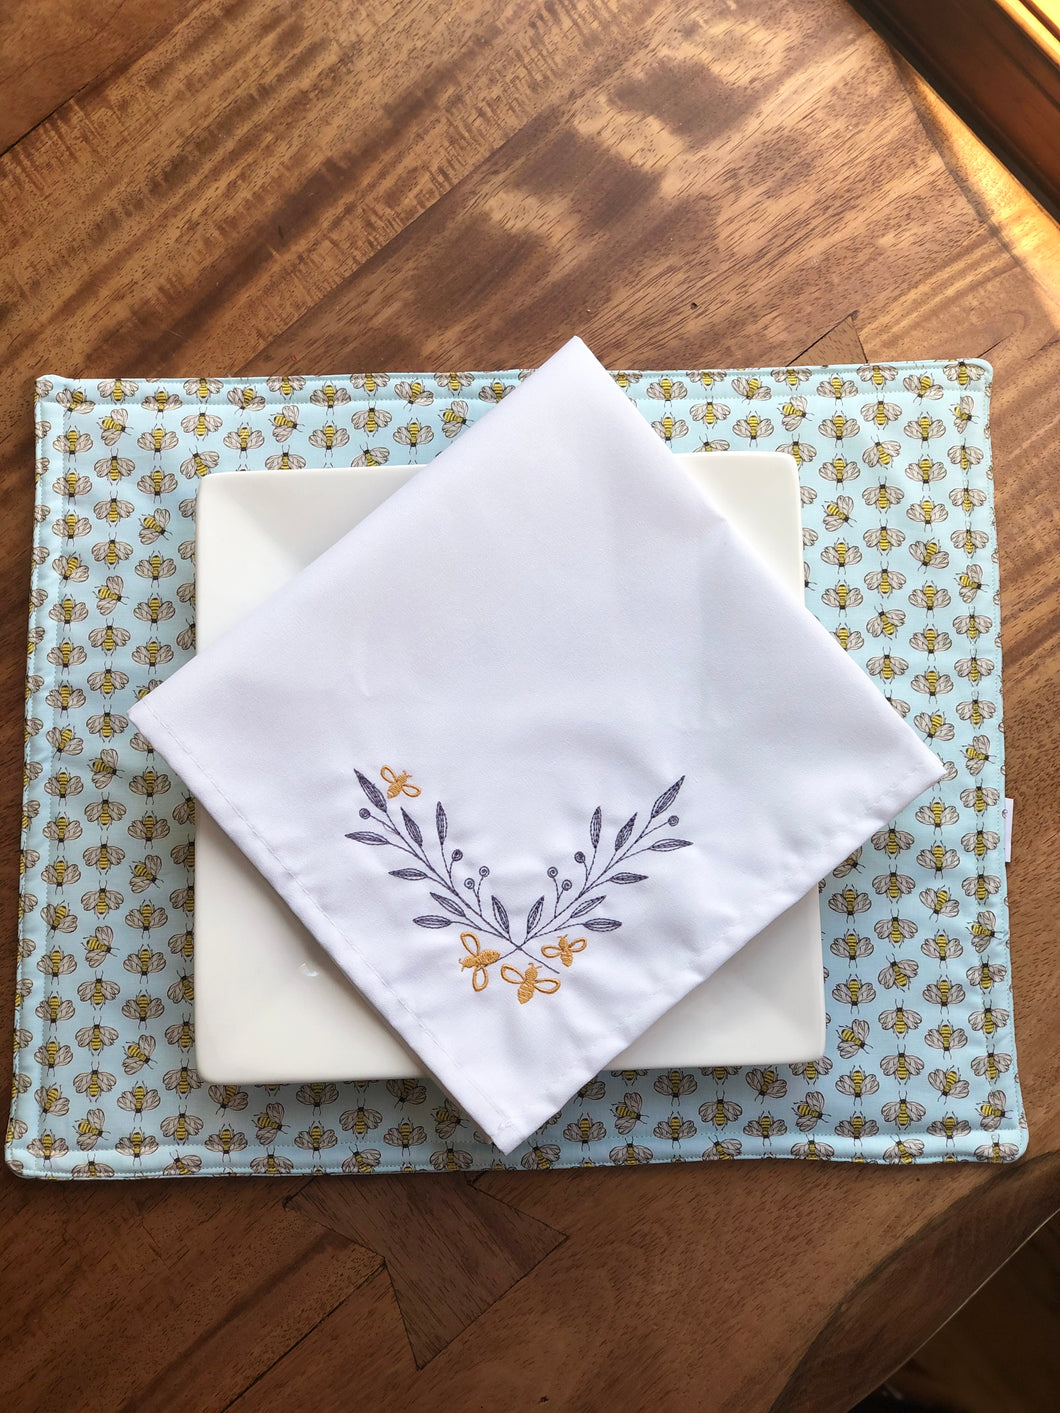 Embroidered Bumblebee Gold with Leaves Napkins - Set of Two